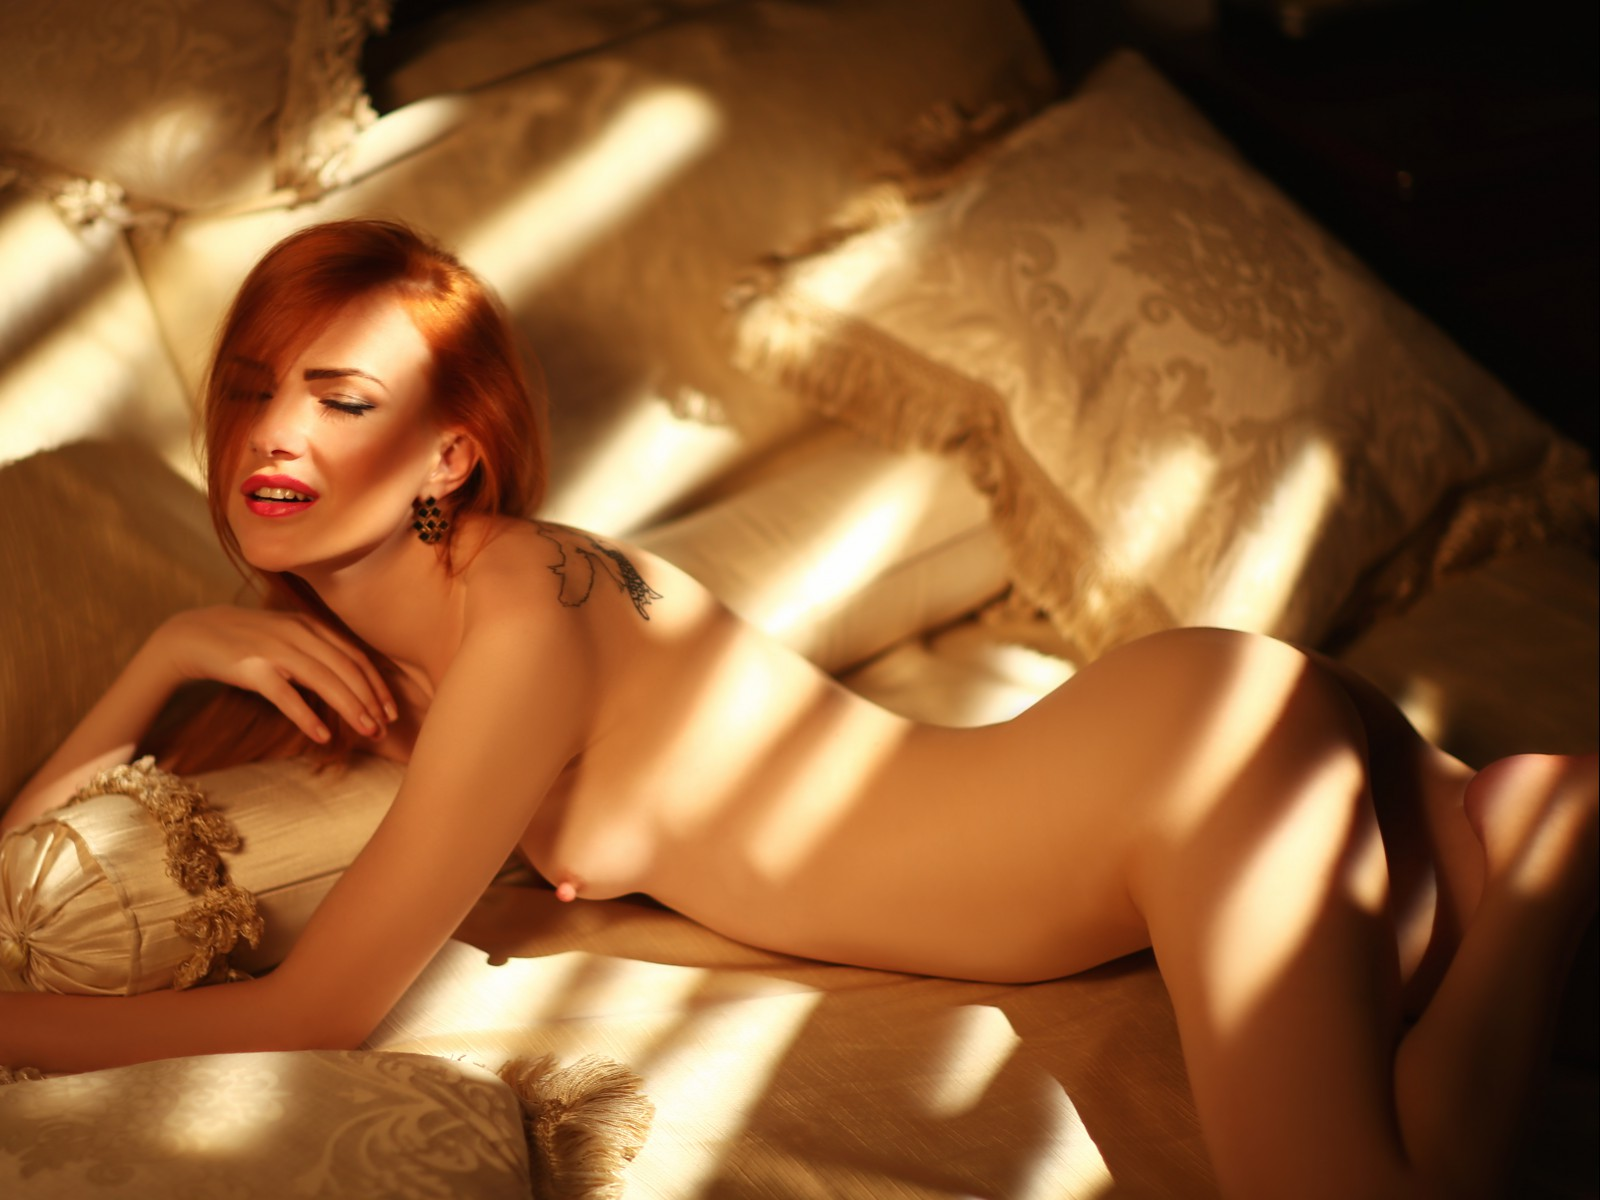 Redhead xxx live feed DivineAnabelle